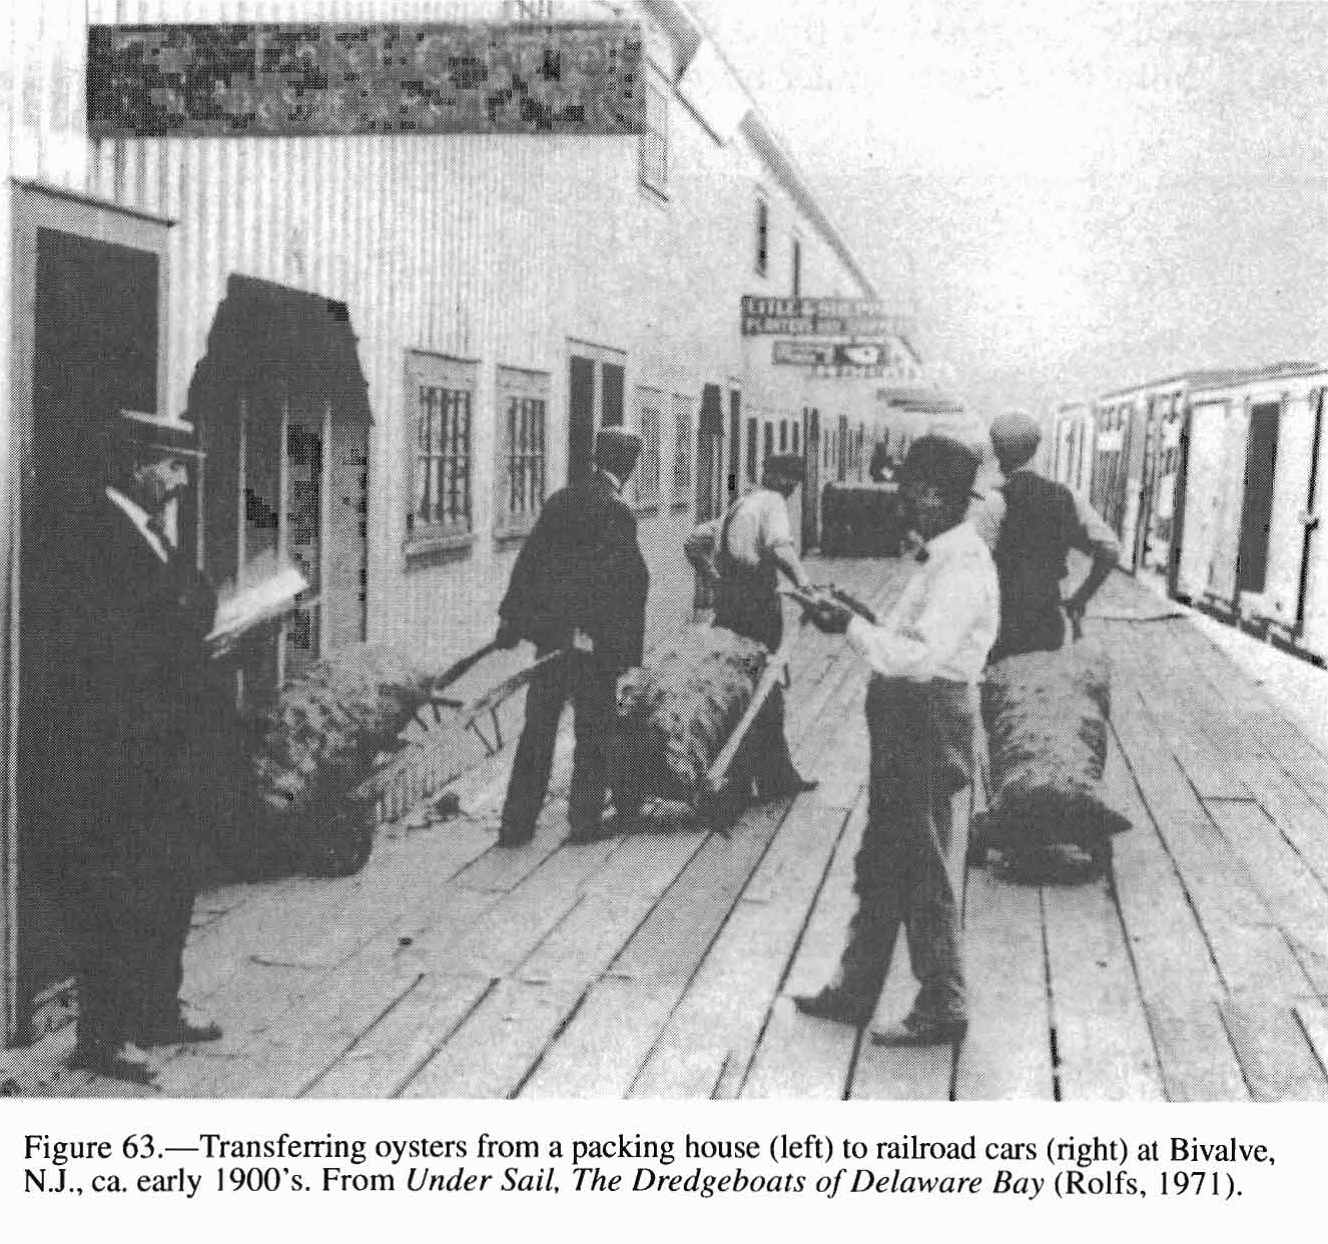 oysters to railcars